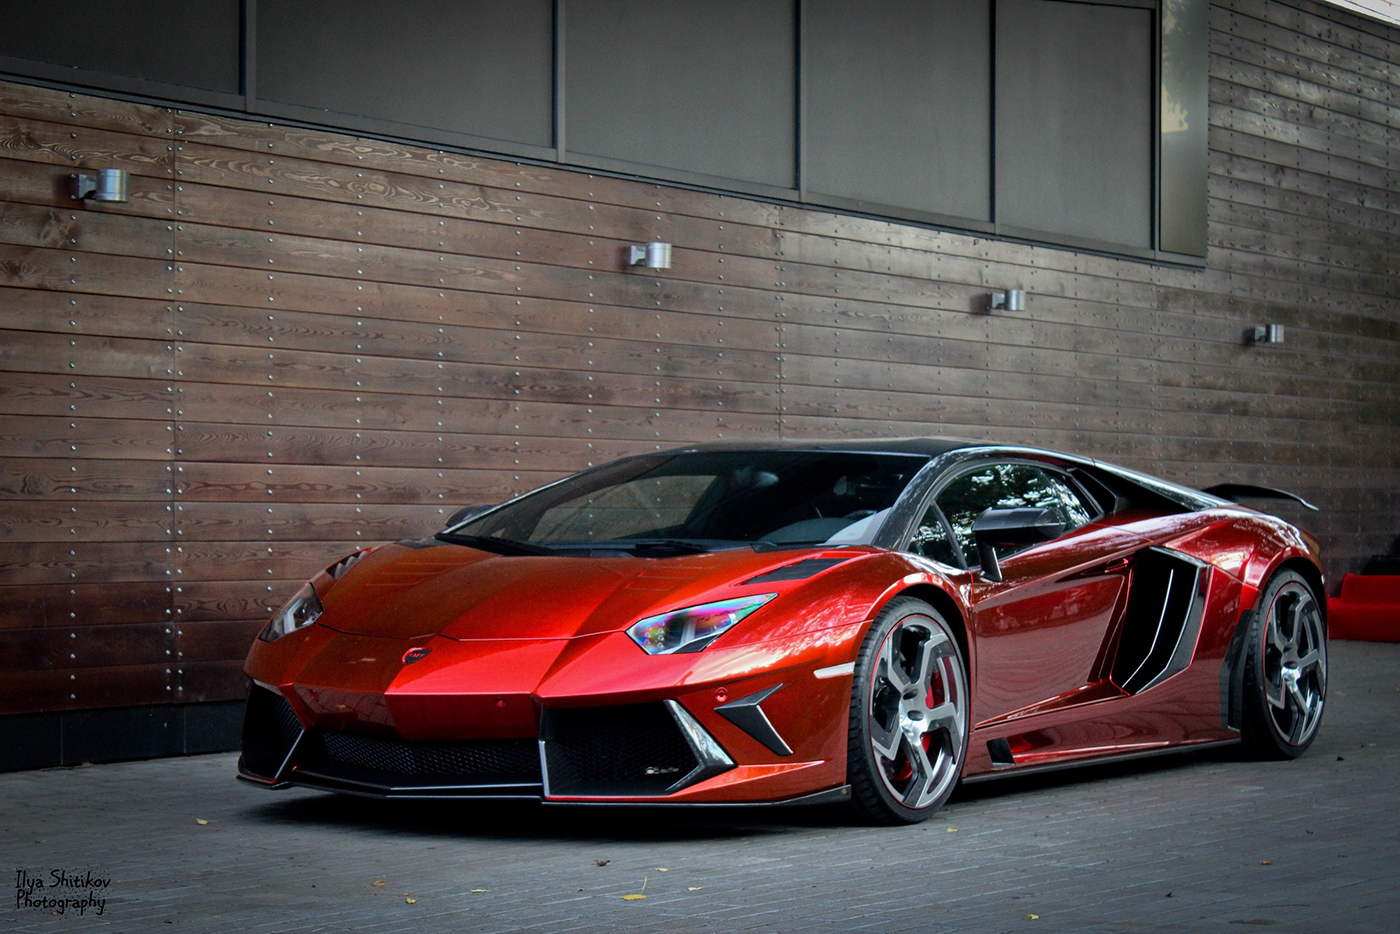 This Mansory Aventador is waiting for a new owner